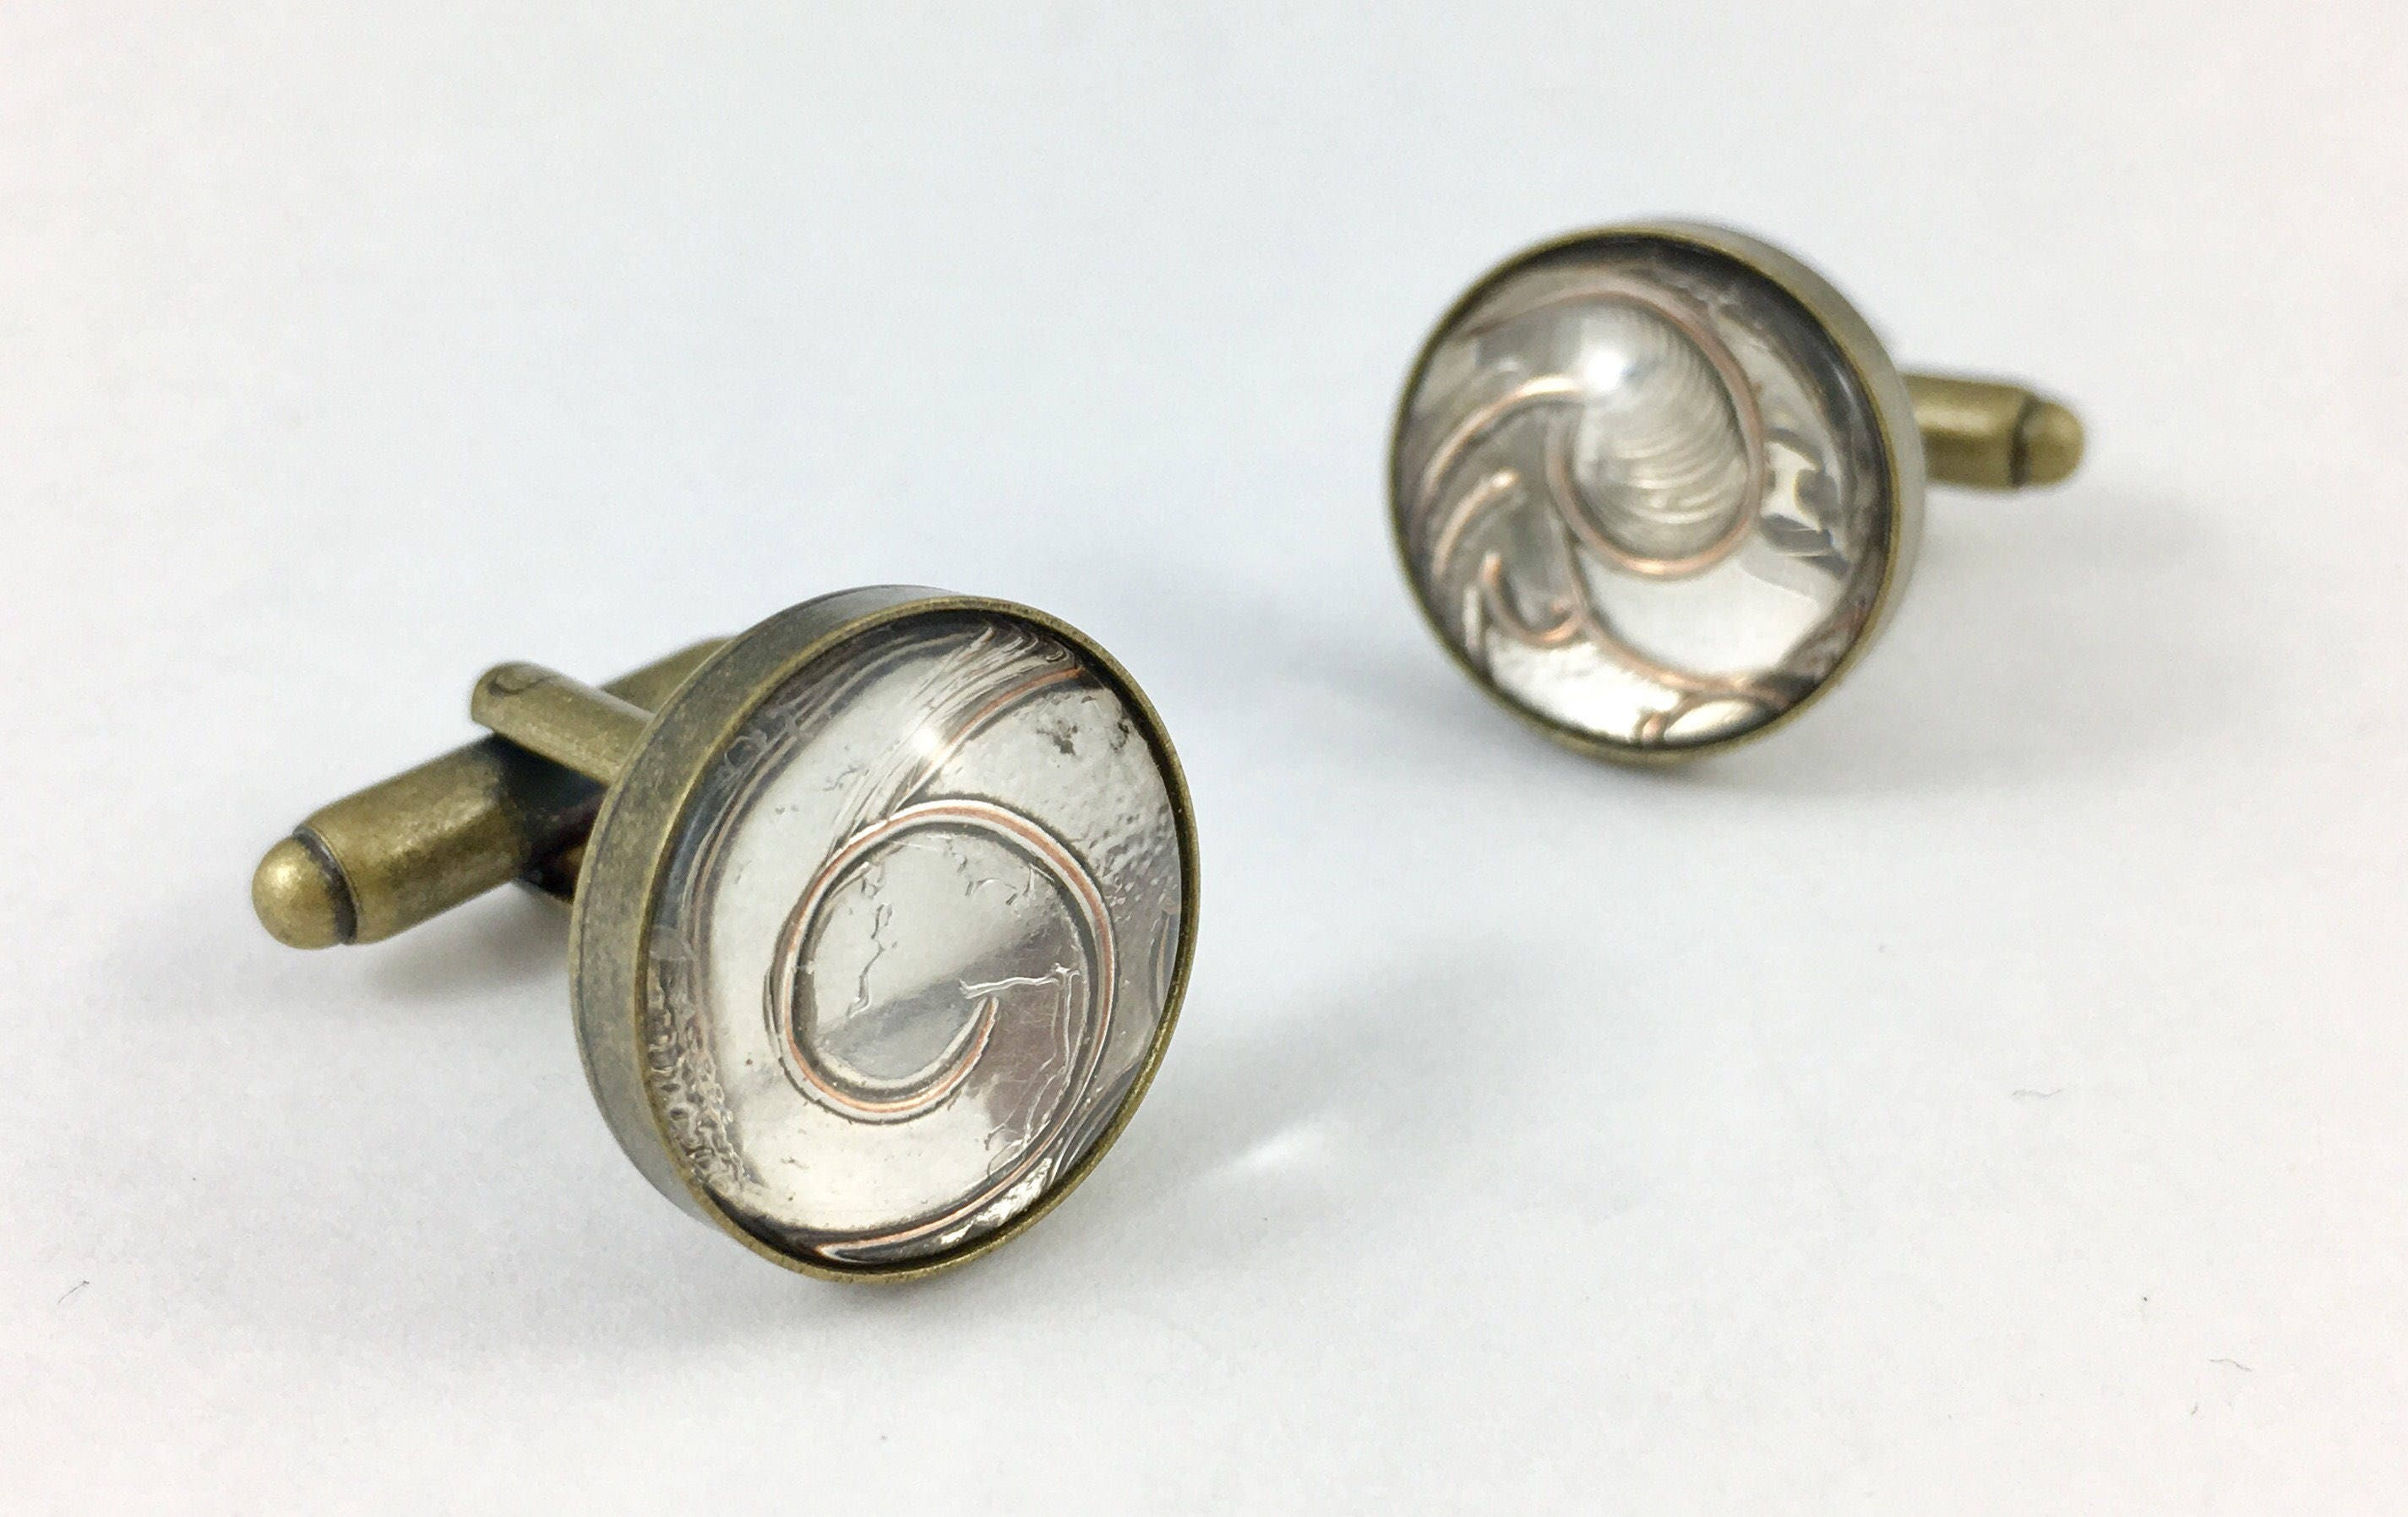 Vintage Cufflinks, Husband Gift, Unusual Cufflinks, Cool Cufflinks ...